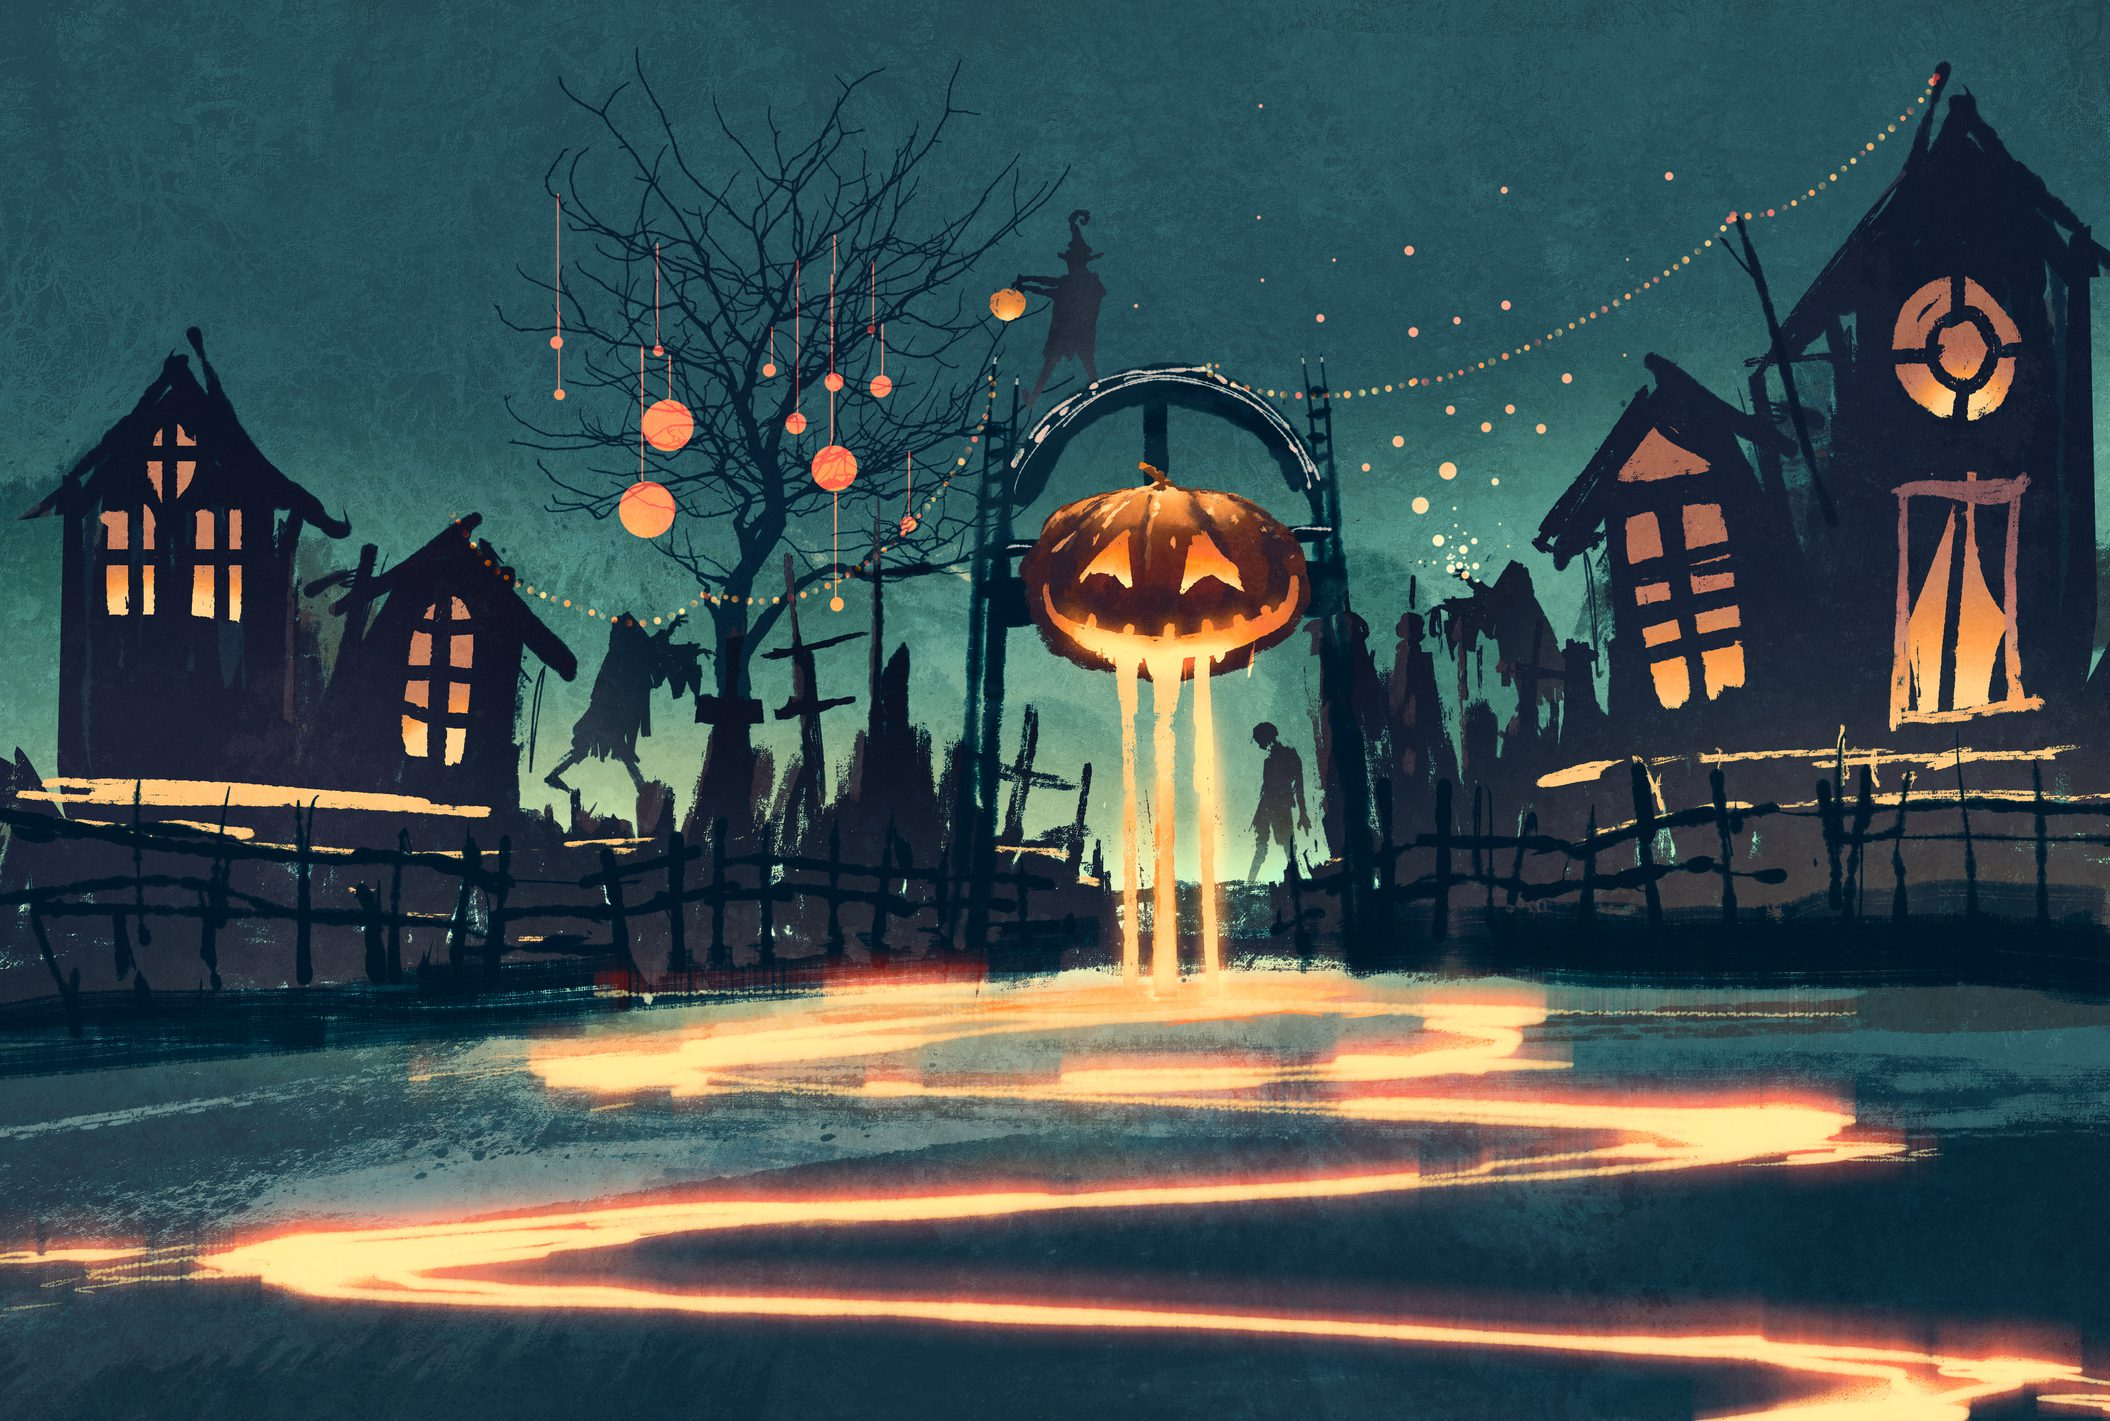 Animated Halloween town